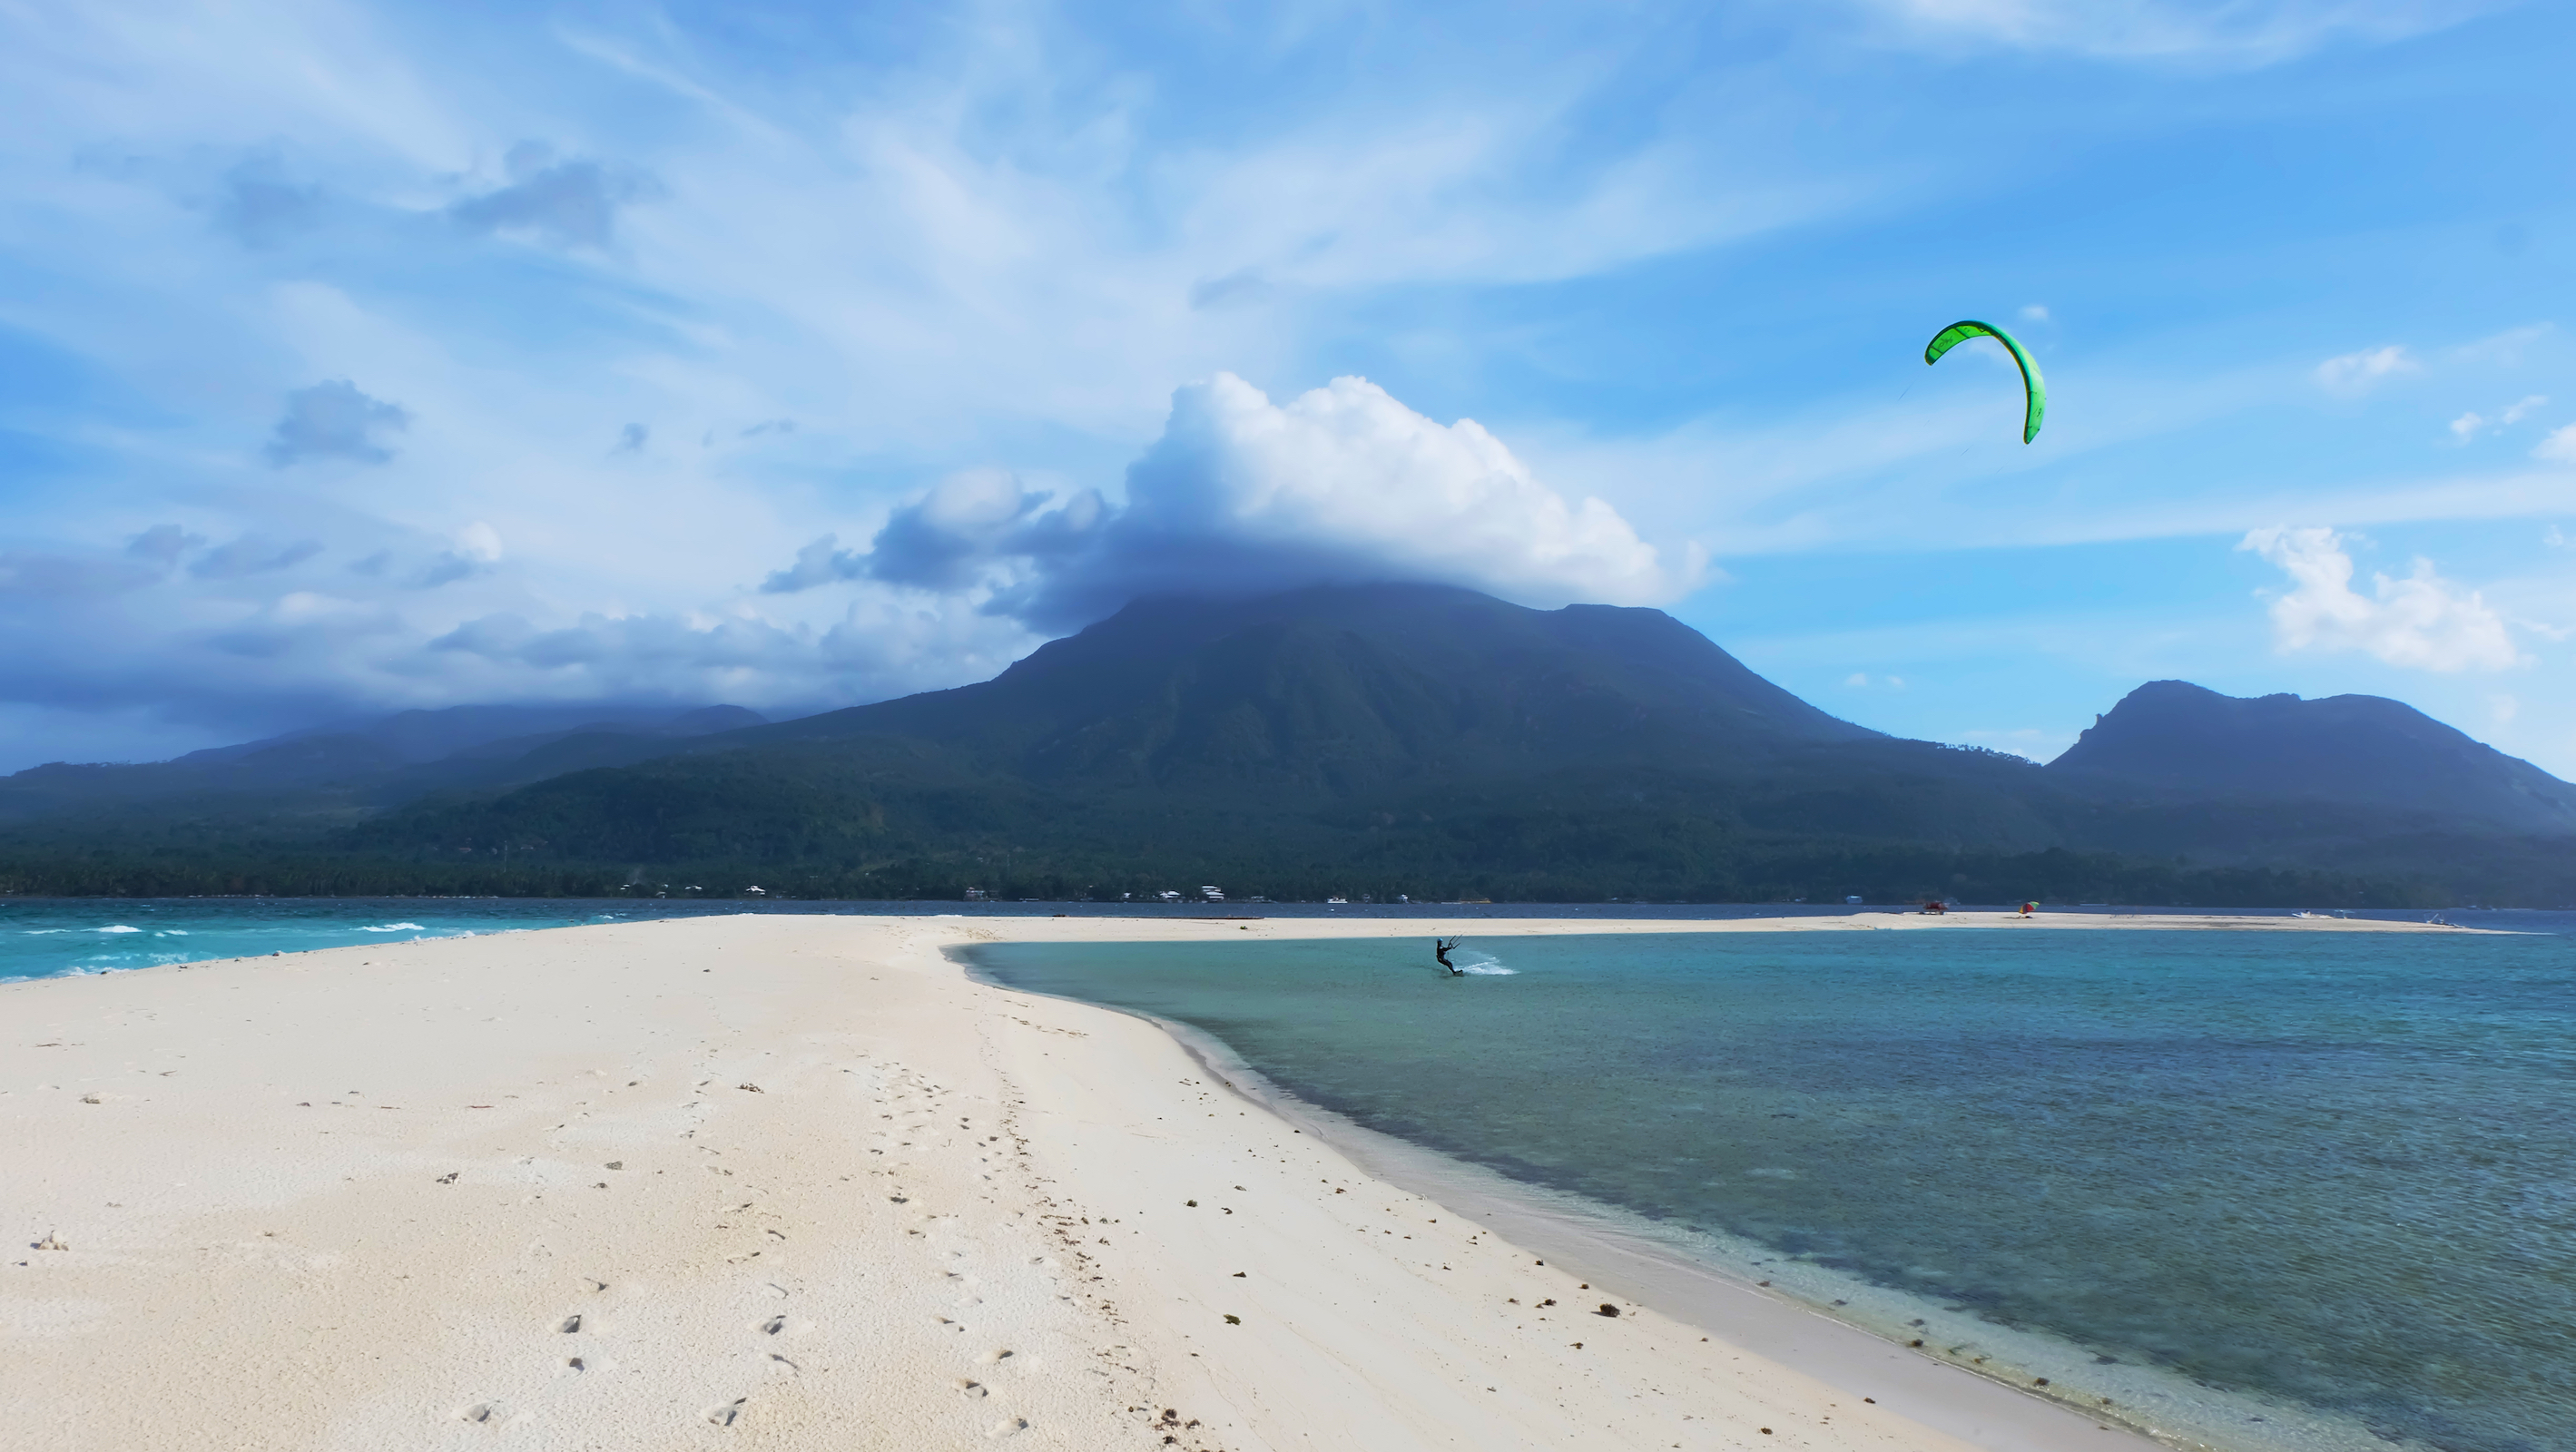 Mambajao White Island in Camiguin